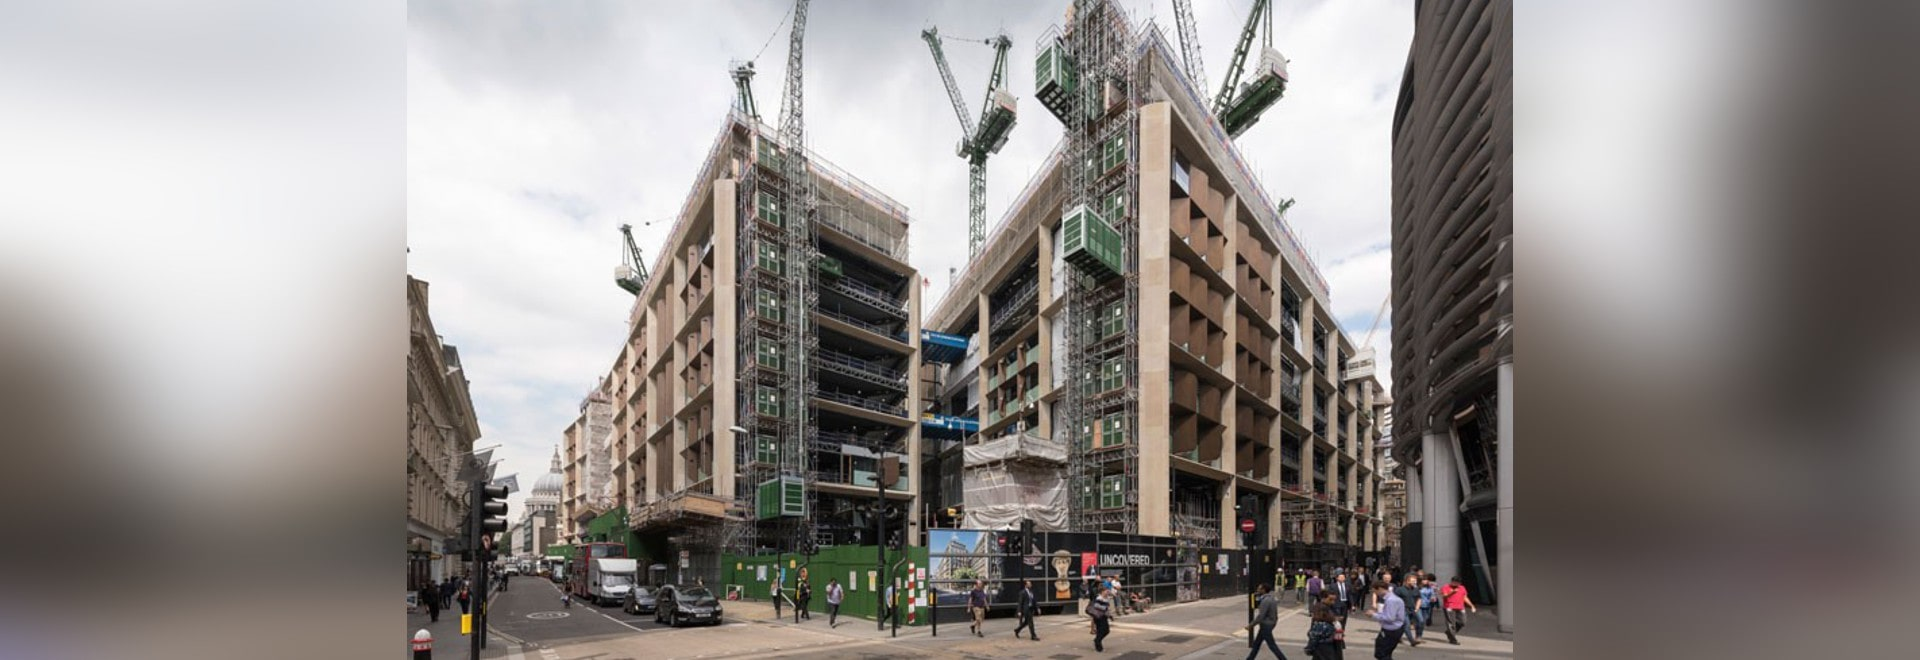 Foster + partners' bloomberg european HQ underway in central london